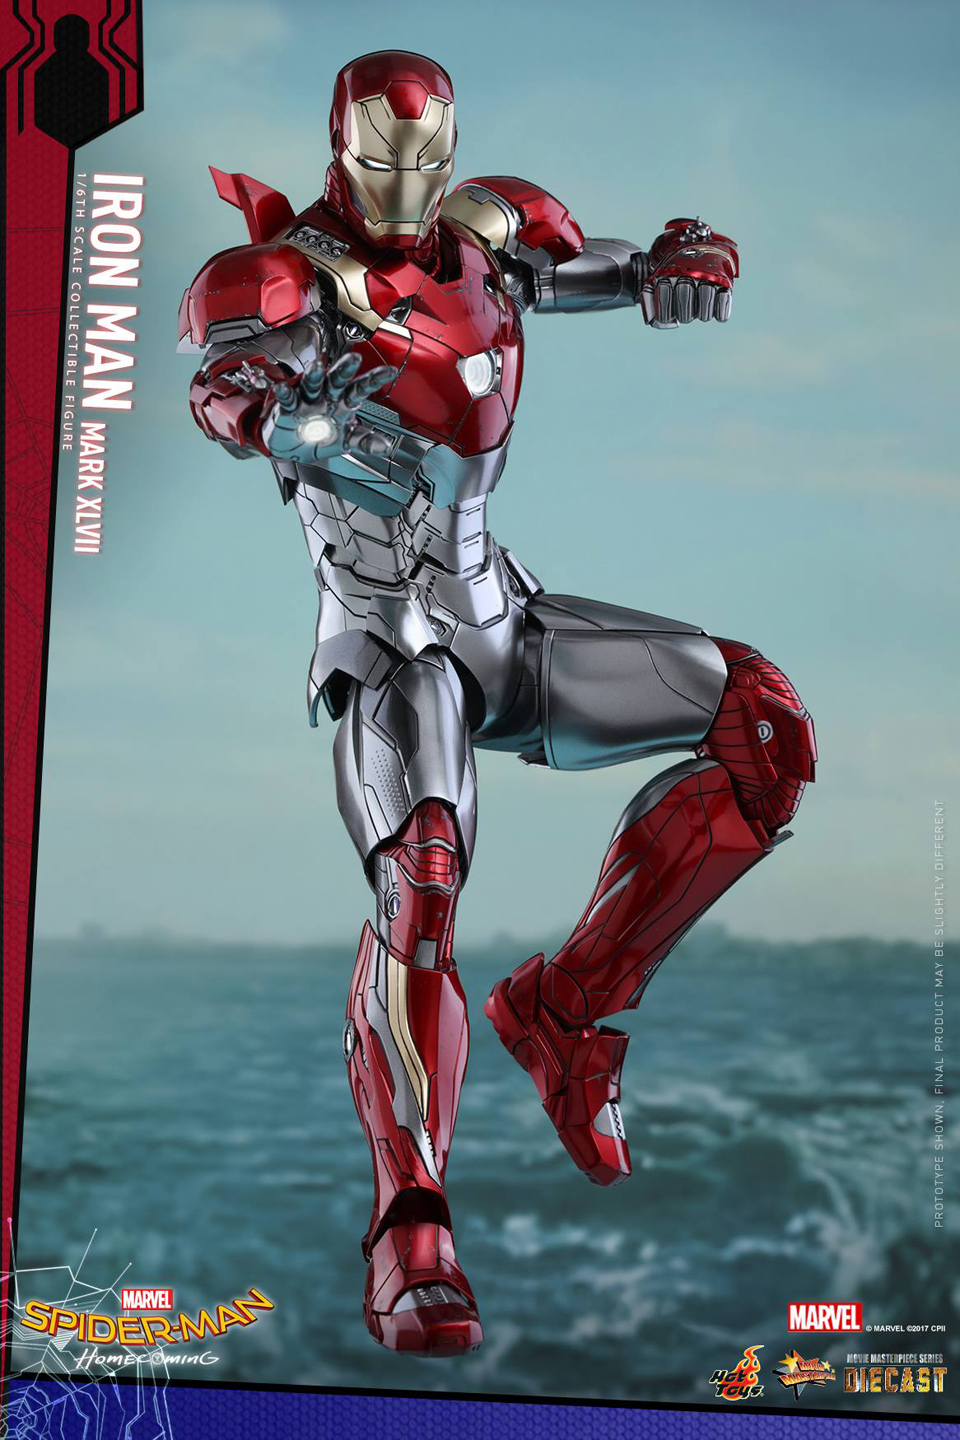 Hot Toys Spider-Man: Homecoming Iron Man Mark XLVII Action Figure